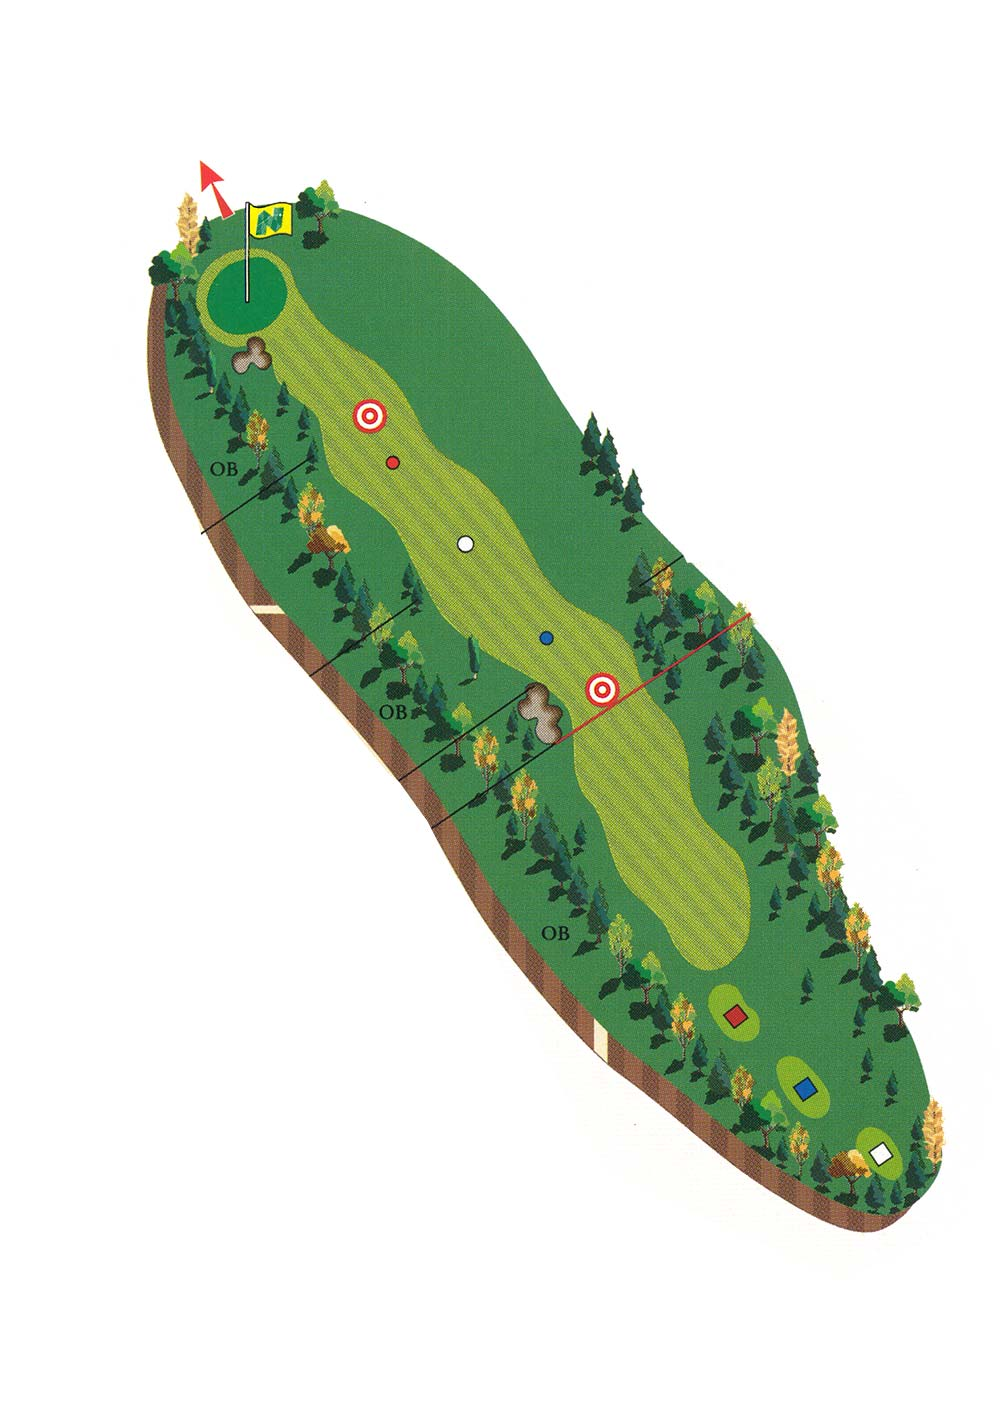 NS Course Description - Hole 15